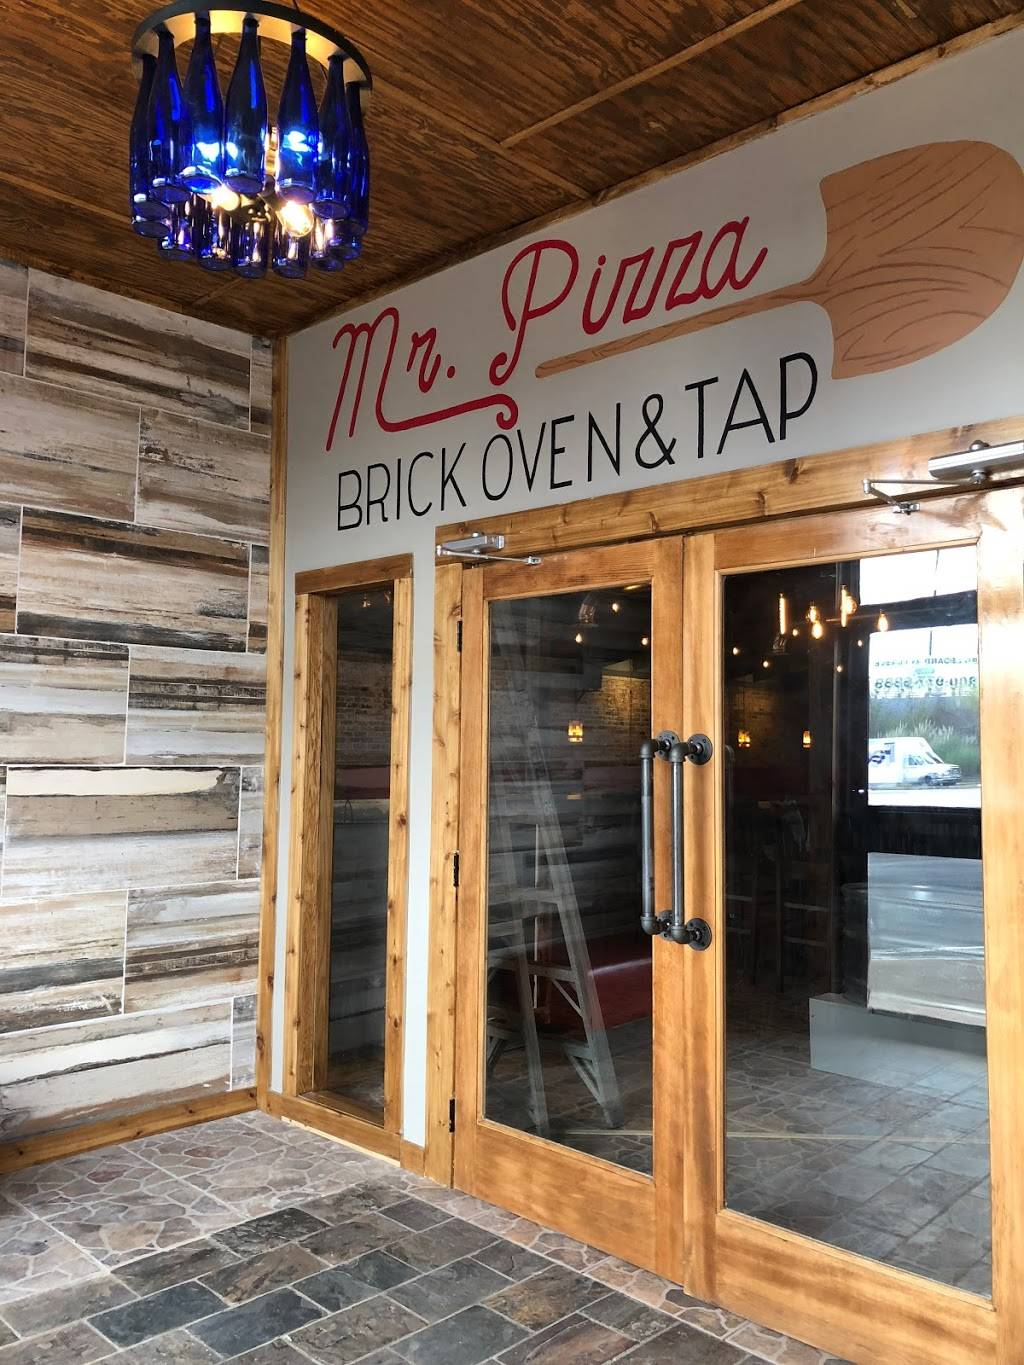 Mr. Pizza Brick Oven and Tap | restaurant | 3443 Macon Rd, Columbus, GA 31907, USA | 7065070483 OR +1 706-507-0483